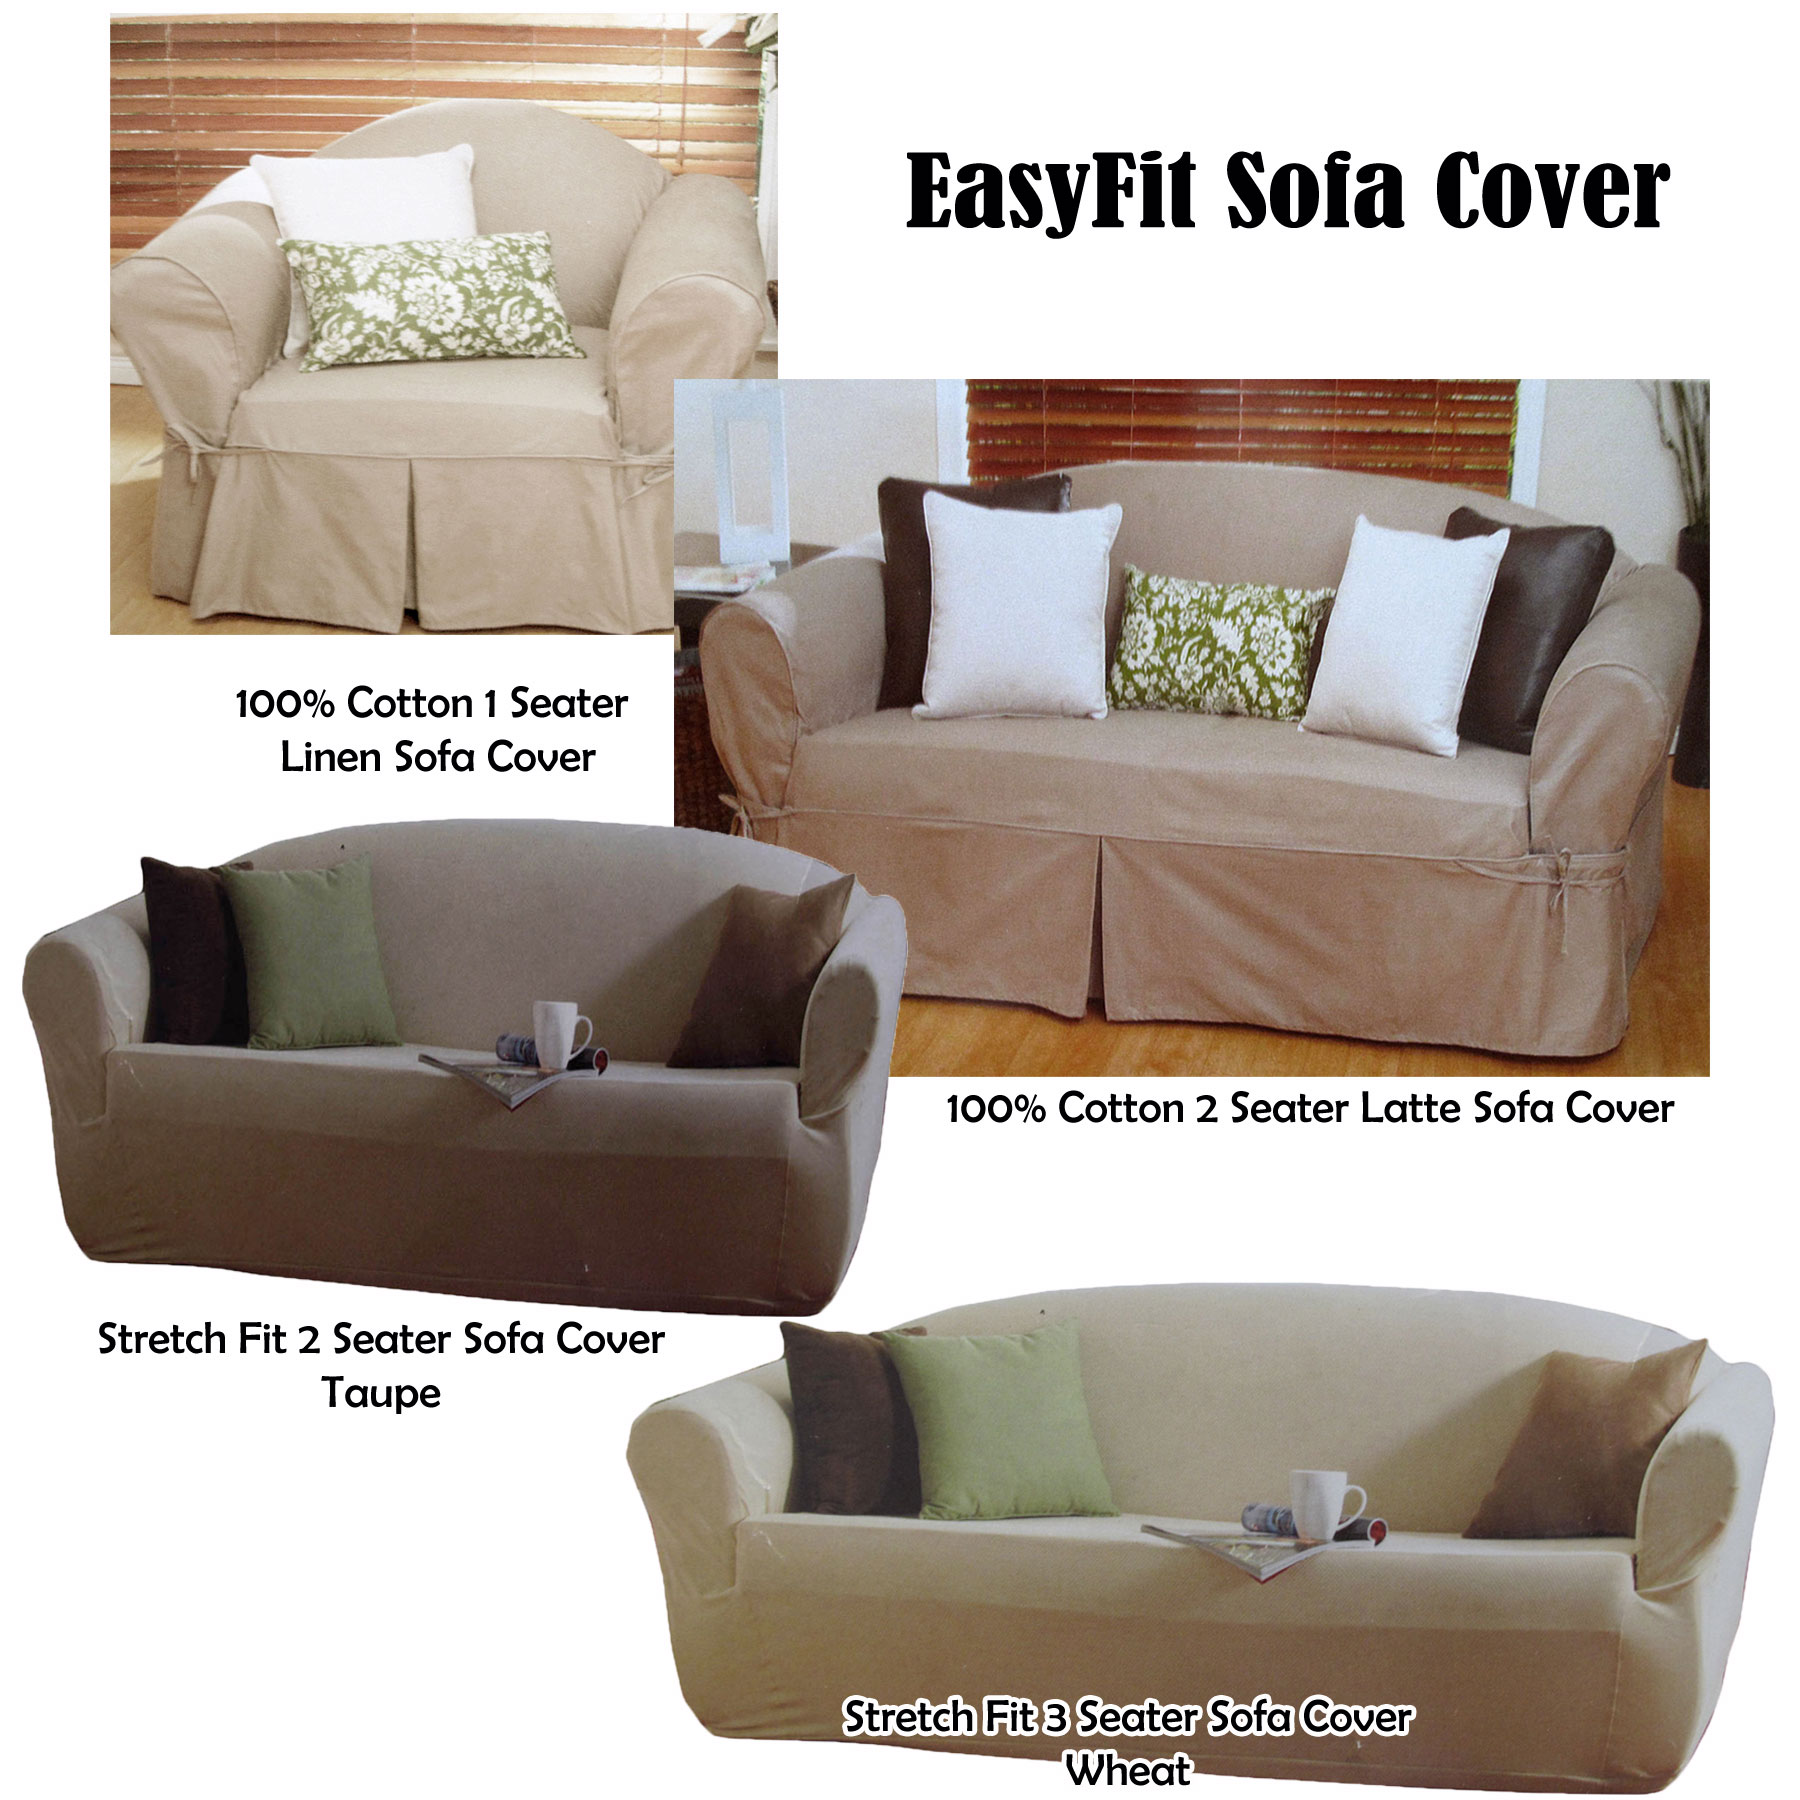 Details about 1 to 2 Seater OR 2 to 3 Seater Sofa Couch Cover - Cotton OR  Polyester